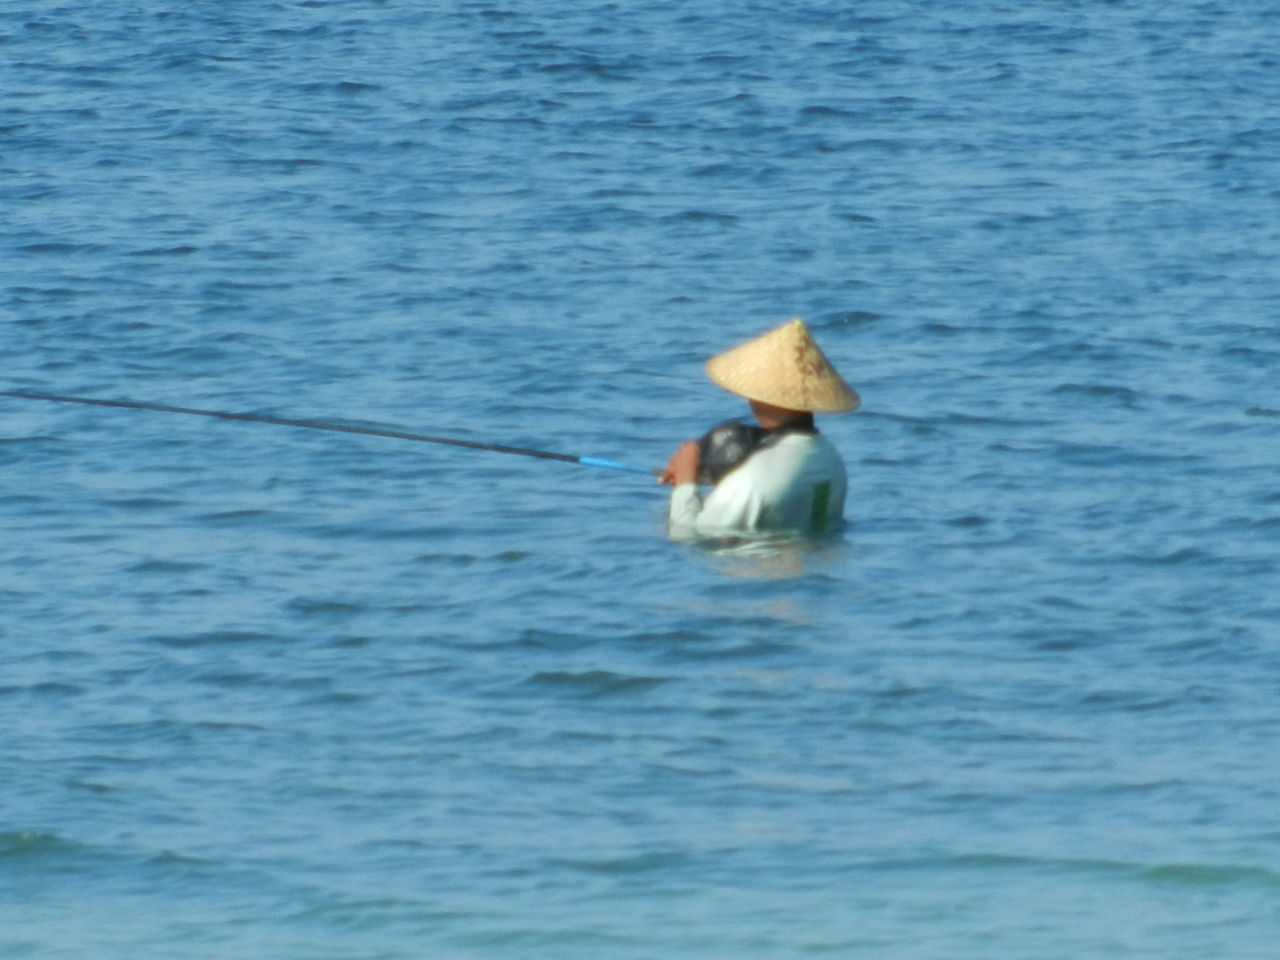 water, fishing, hat, sea, one person, holding, outdoors, day, rear view, real people, oar, asian style conical hat, waterfront, nature, fishing pole, fishing tackle, nautical vessel, rowing, adult, people